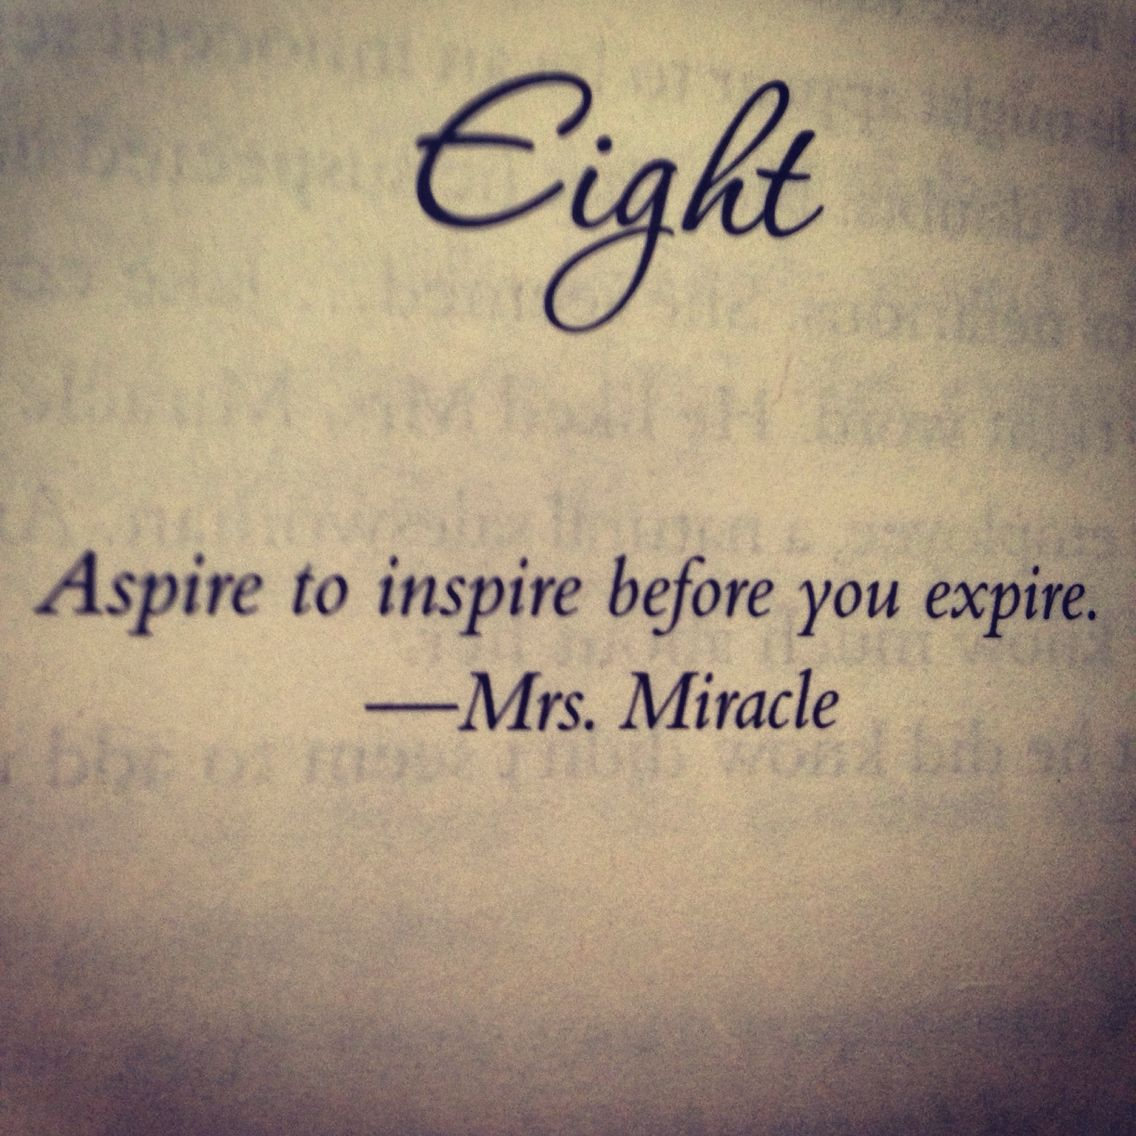 Aspire to inspire before you expire. Life quotes, Quotes